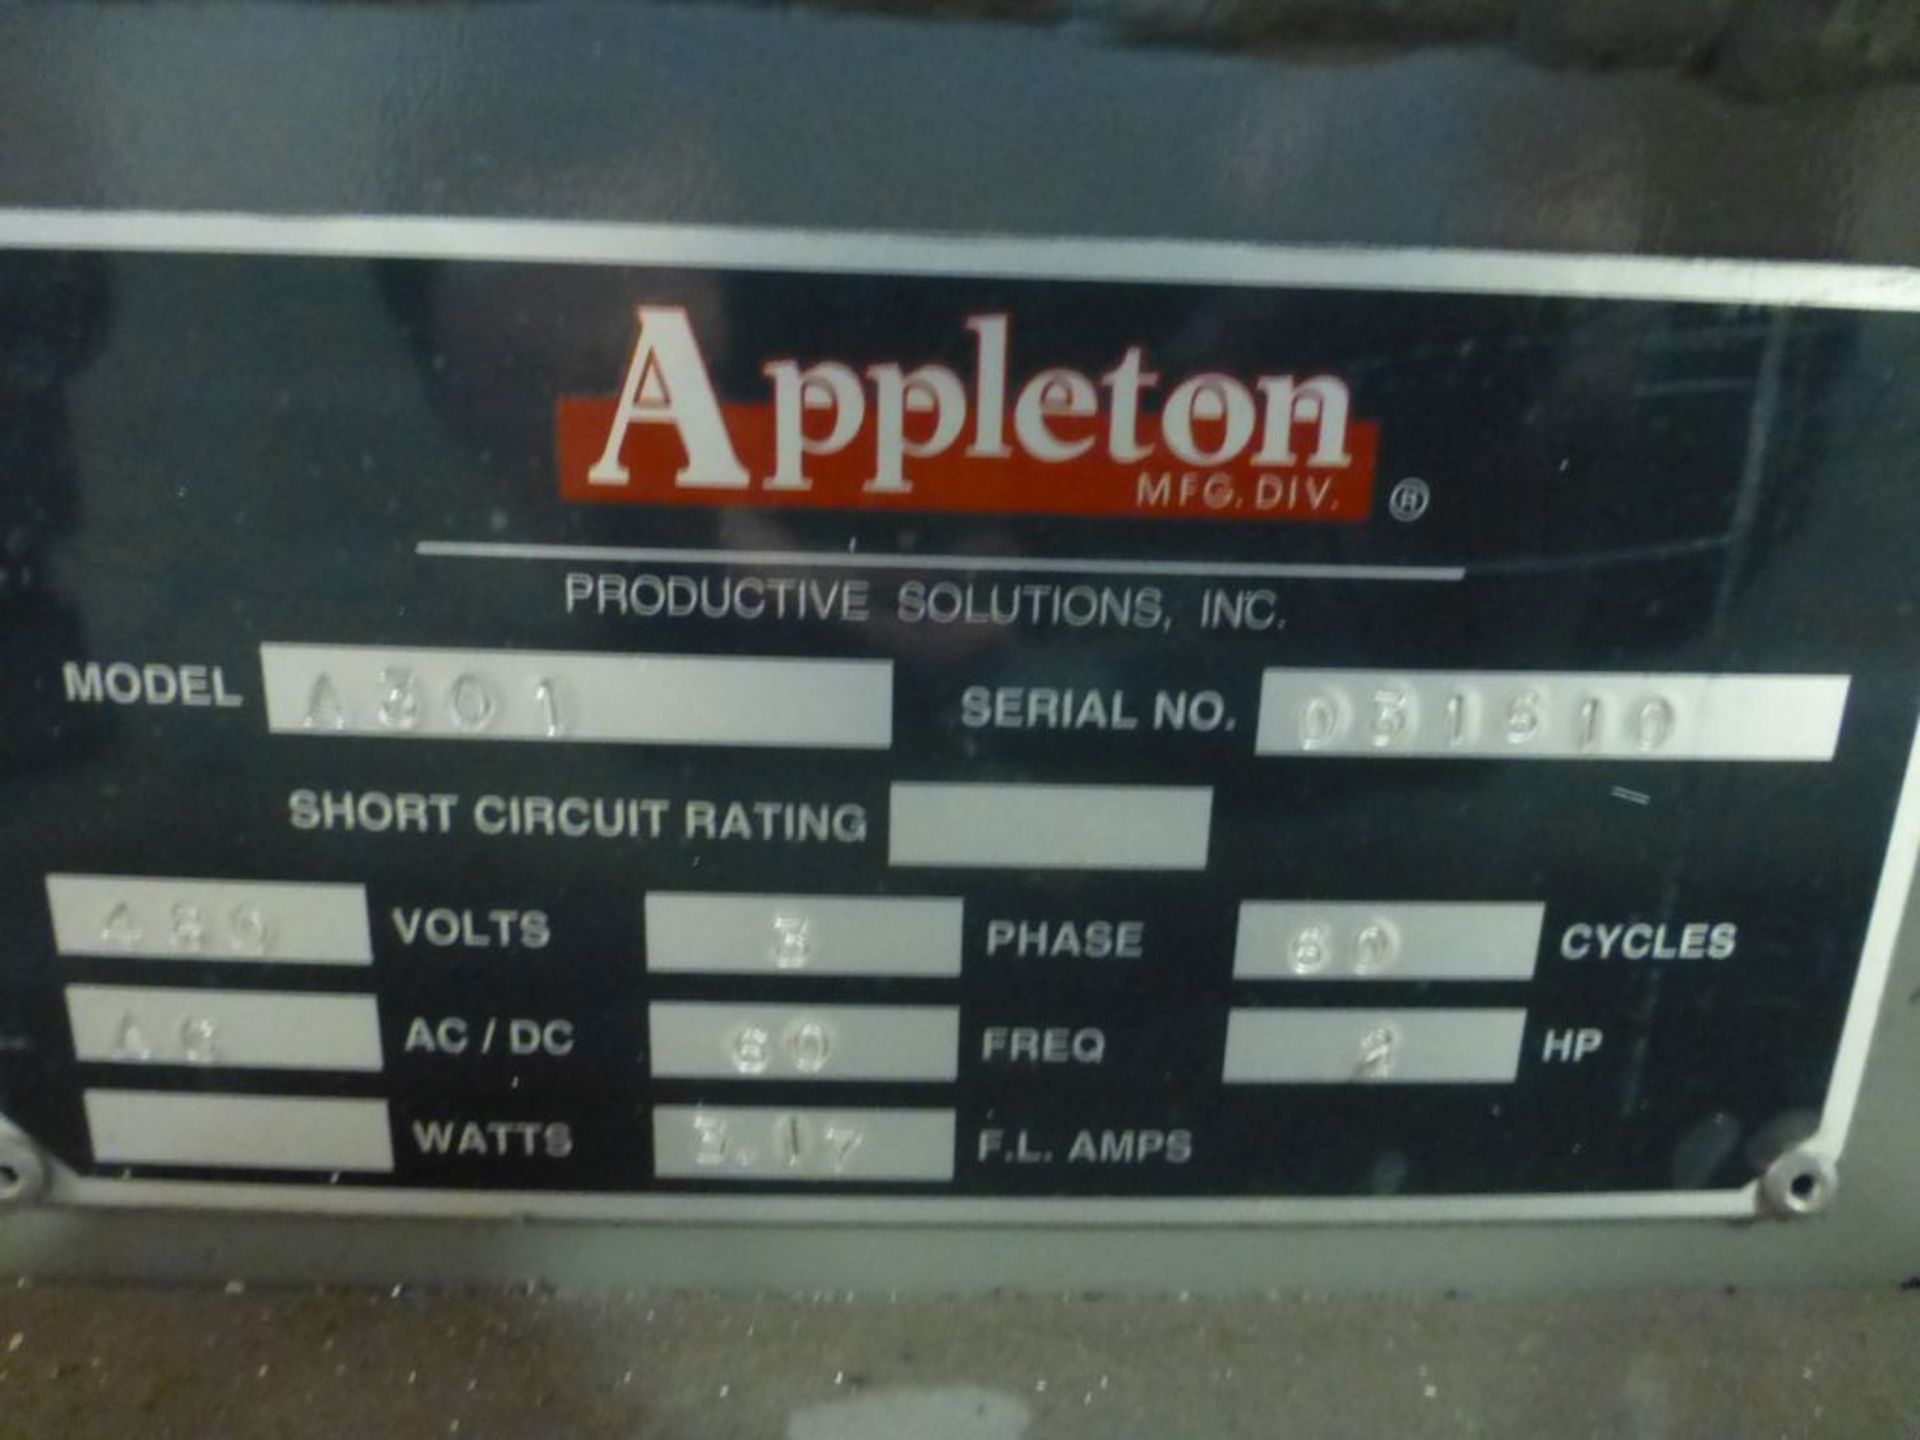 Appleton Automatic Core Cutter | Model No. A301; 2 HP; 460V; 3PH; Mfg: 2010 - Image 18 of 19